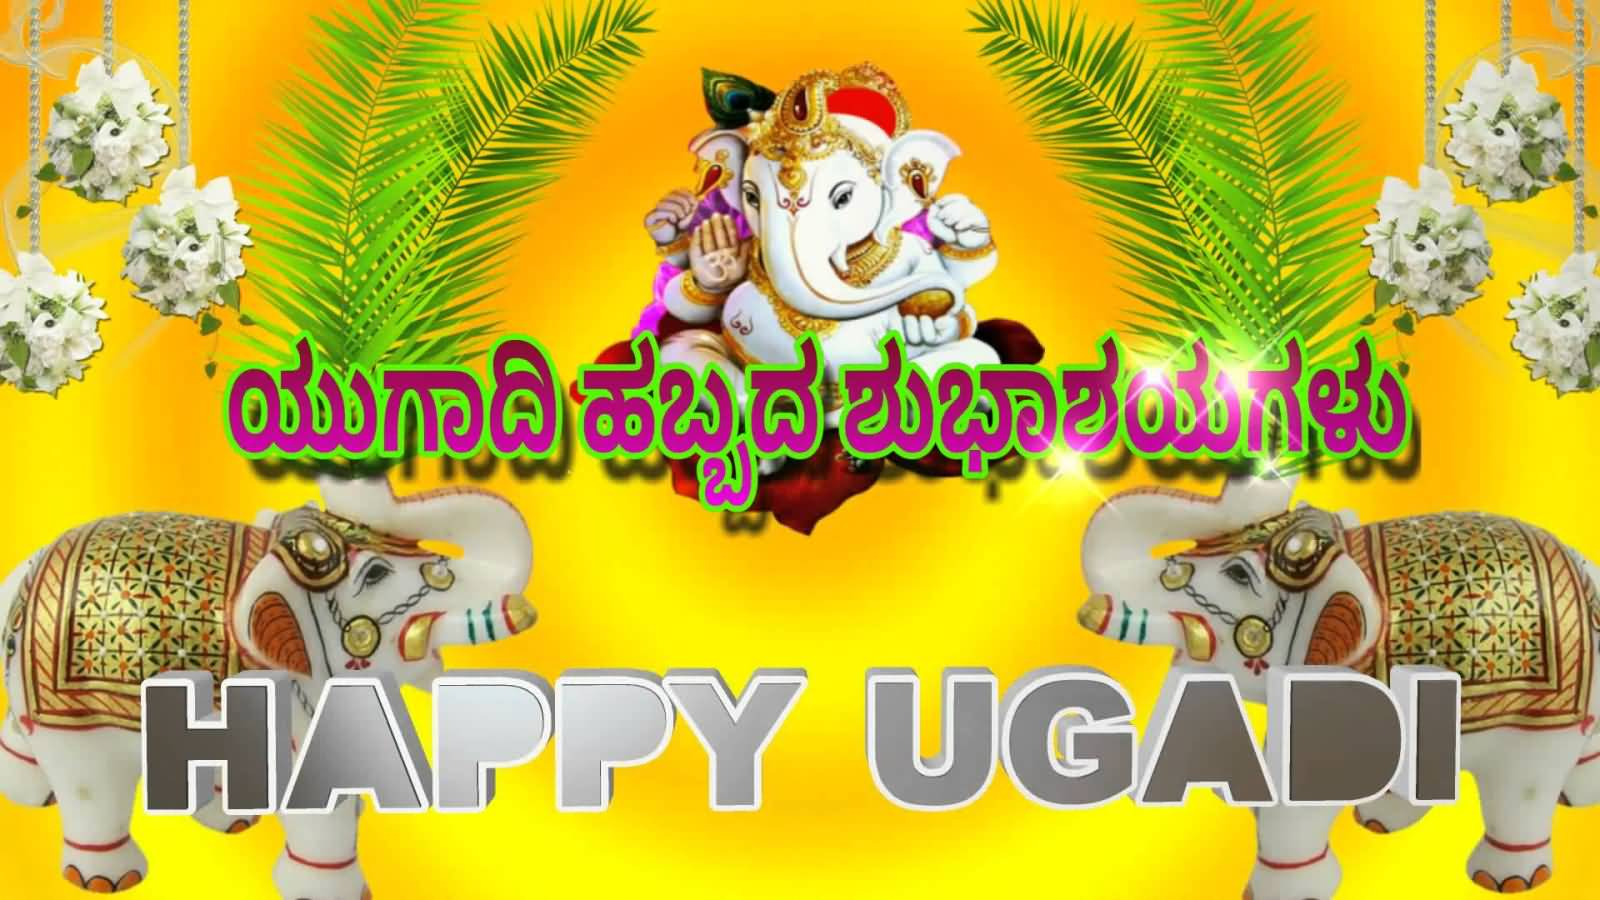 Happy Ugadi Greetings In Kannada